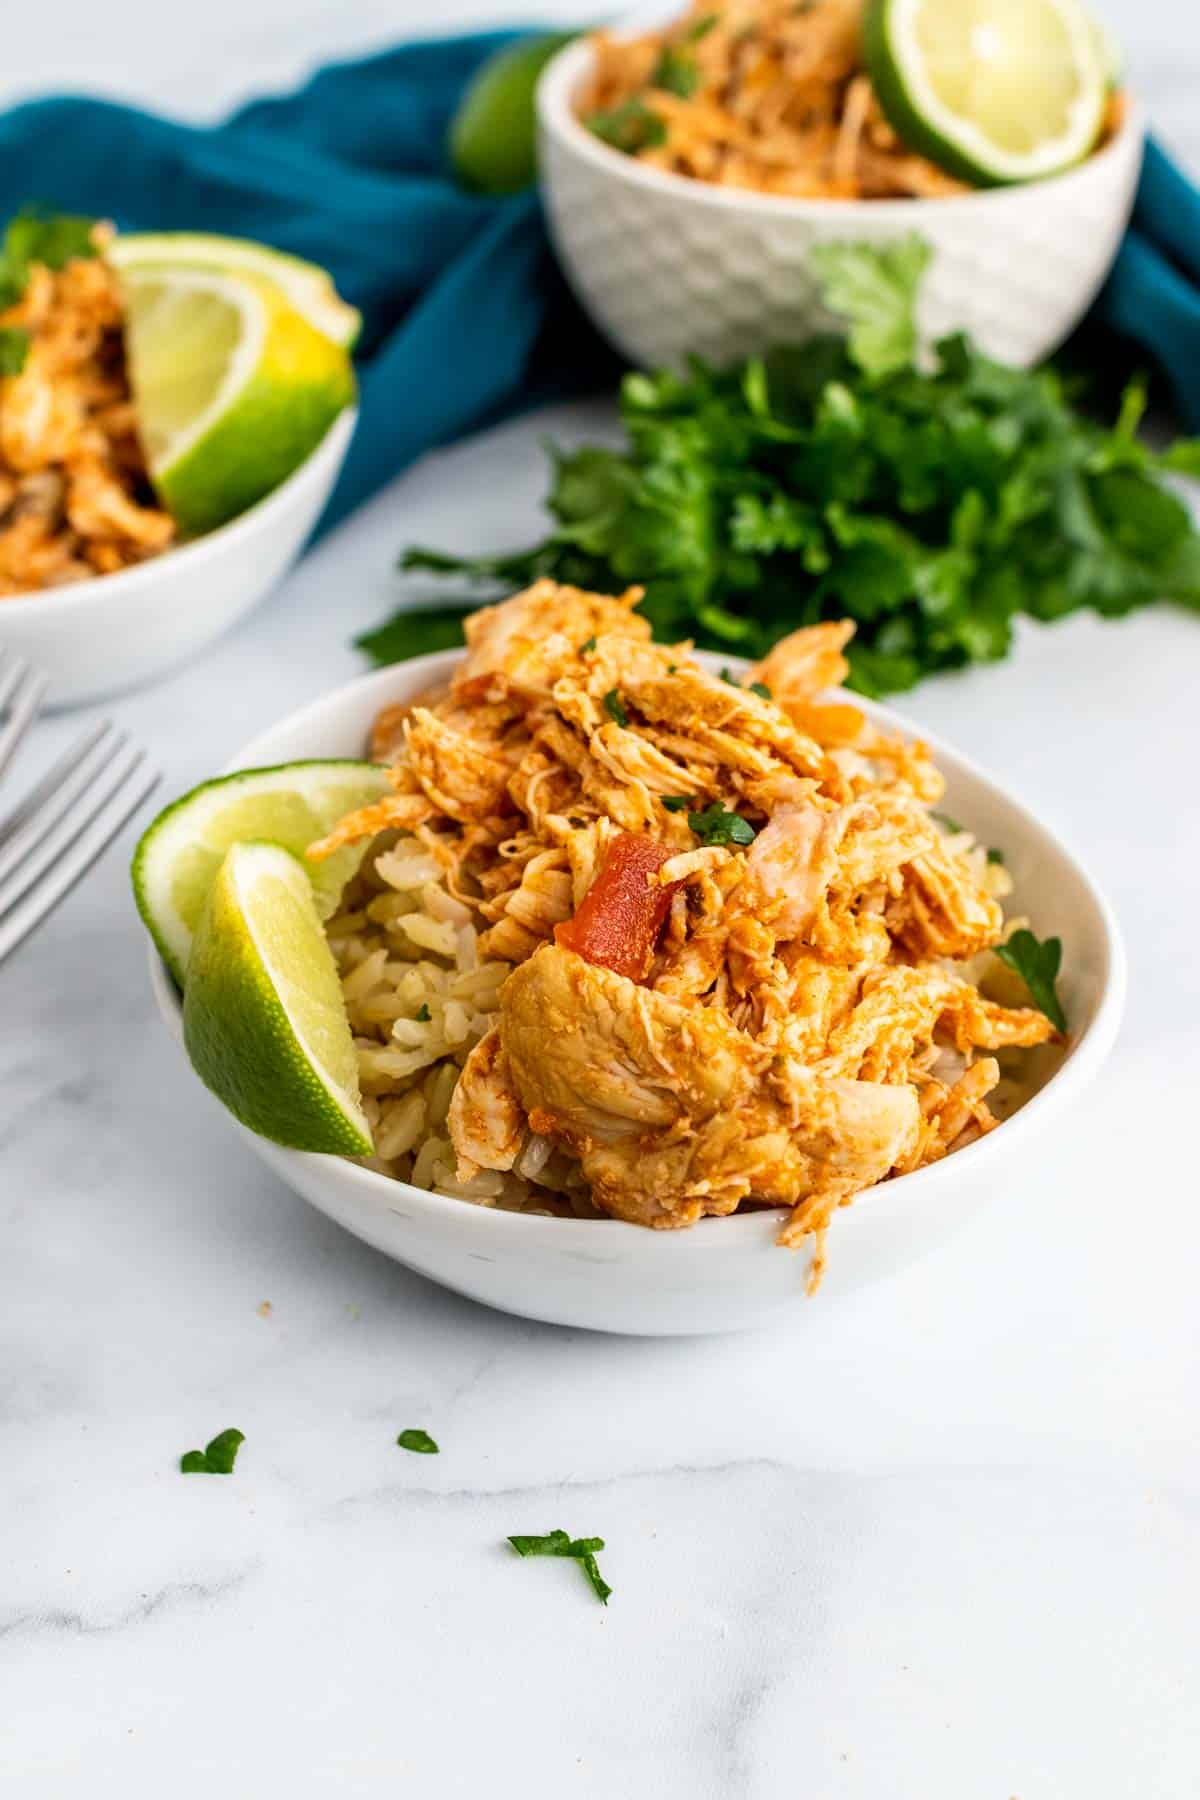 Three bowls of shredded chicken over rice with lime wedges